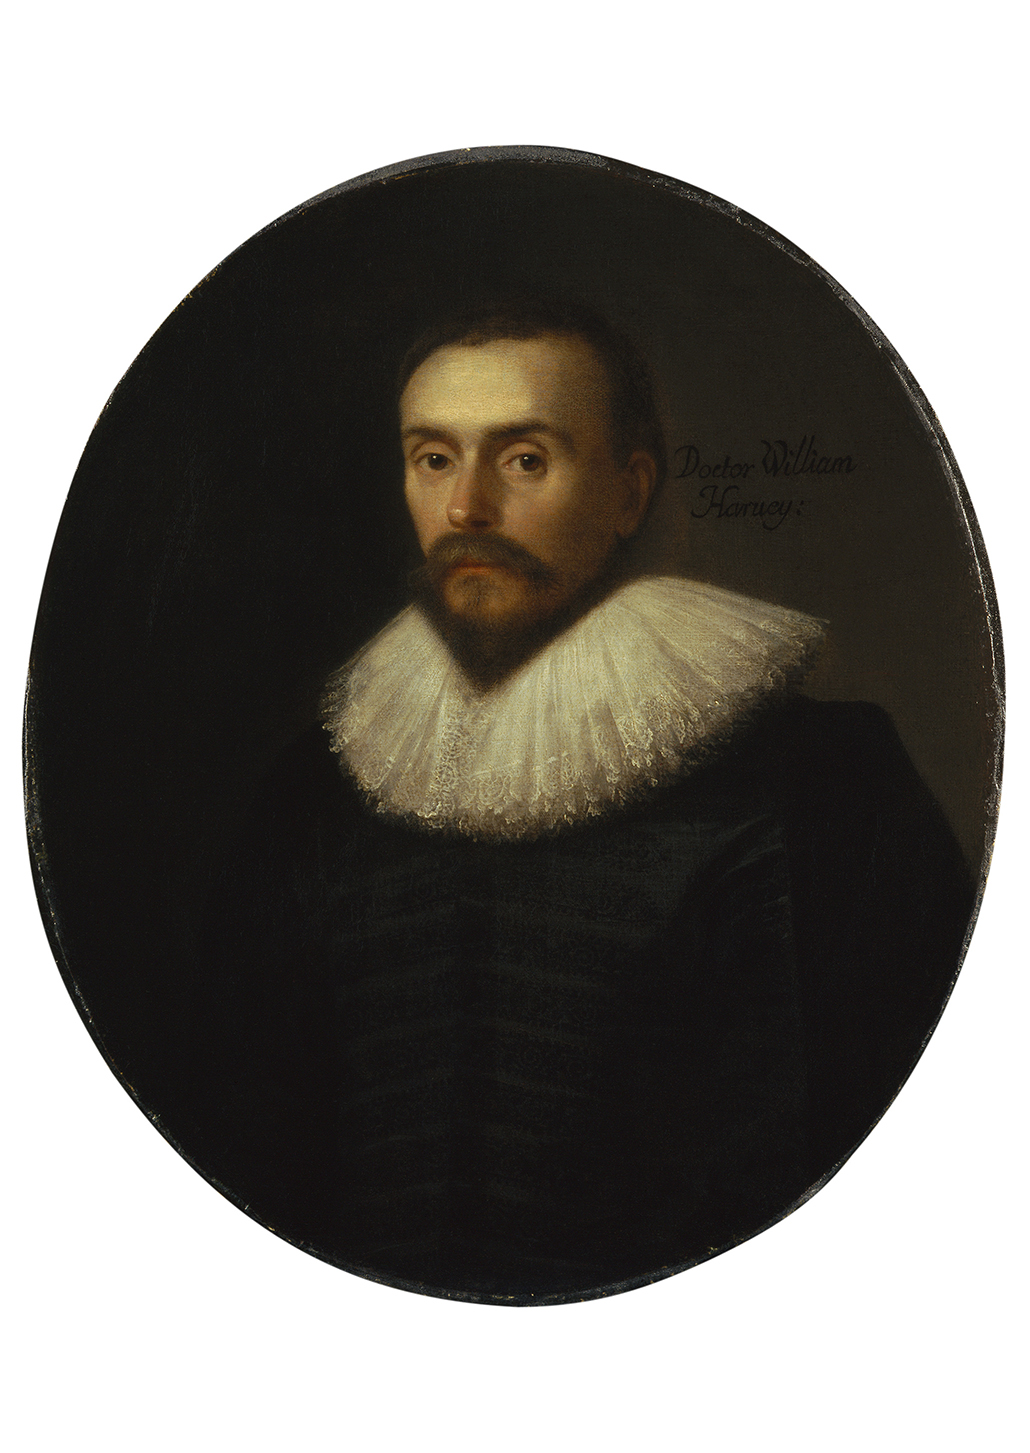 William Harvey by Daniel Mijtens courtesy ©National Portrait Gallery